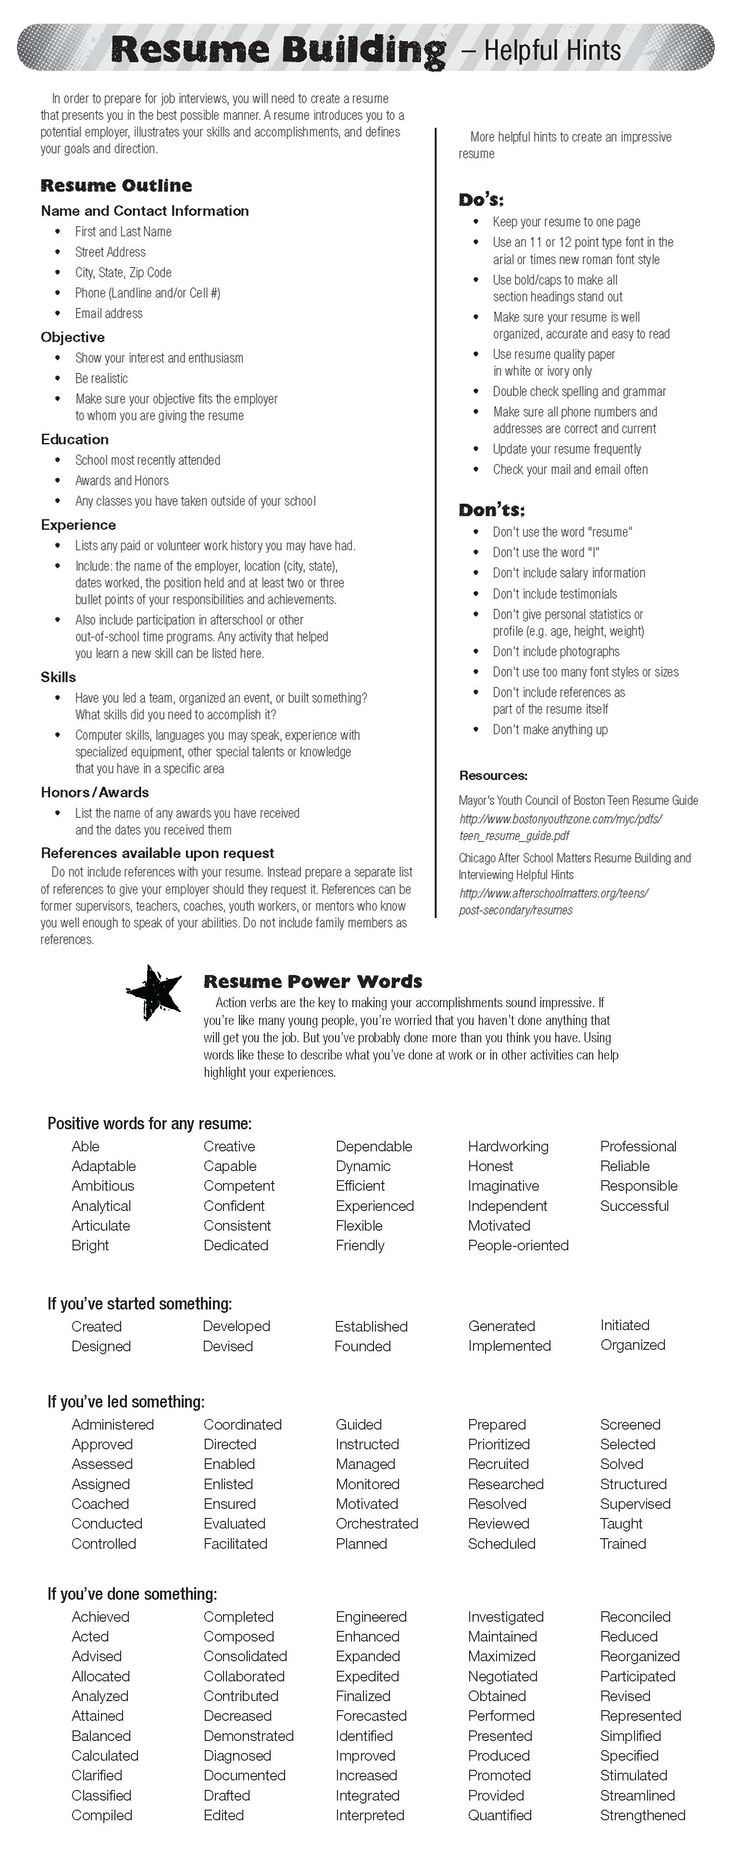 Opposenewapstandardsus  Gorgeous  Ideas About Resume On Pinterest  Cv Format Resume Cv And  With Great  Ideas About Resume On Pinterest  Cv Format Resume Cv And Resume Templates With Delectable What Do A Resume Look Like Also Grocery Clerk Resume In Addition Self Employment On Resume And Free Resume Layouts As Well As Construction Estimator Resume Additionally Performance Resume Template From Pinterestcom With Opposenewapstandardsus  Great  Ideas About Resume On Pinterest  Cv Format Resume Cv And  With Delectable  Ideas About Resume On Pinterest  Cv Format Resume Cv And Resume Templates And Gorgeous What Do A Resume Look Like Also Grocery Clerk Resume In Addition Self Employment On Resume From Pinterestcom